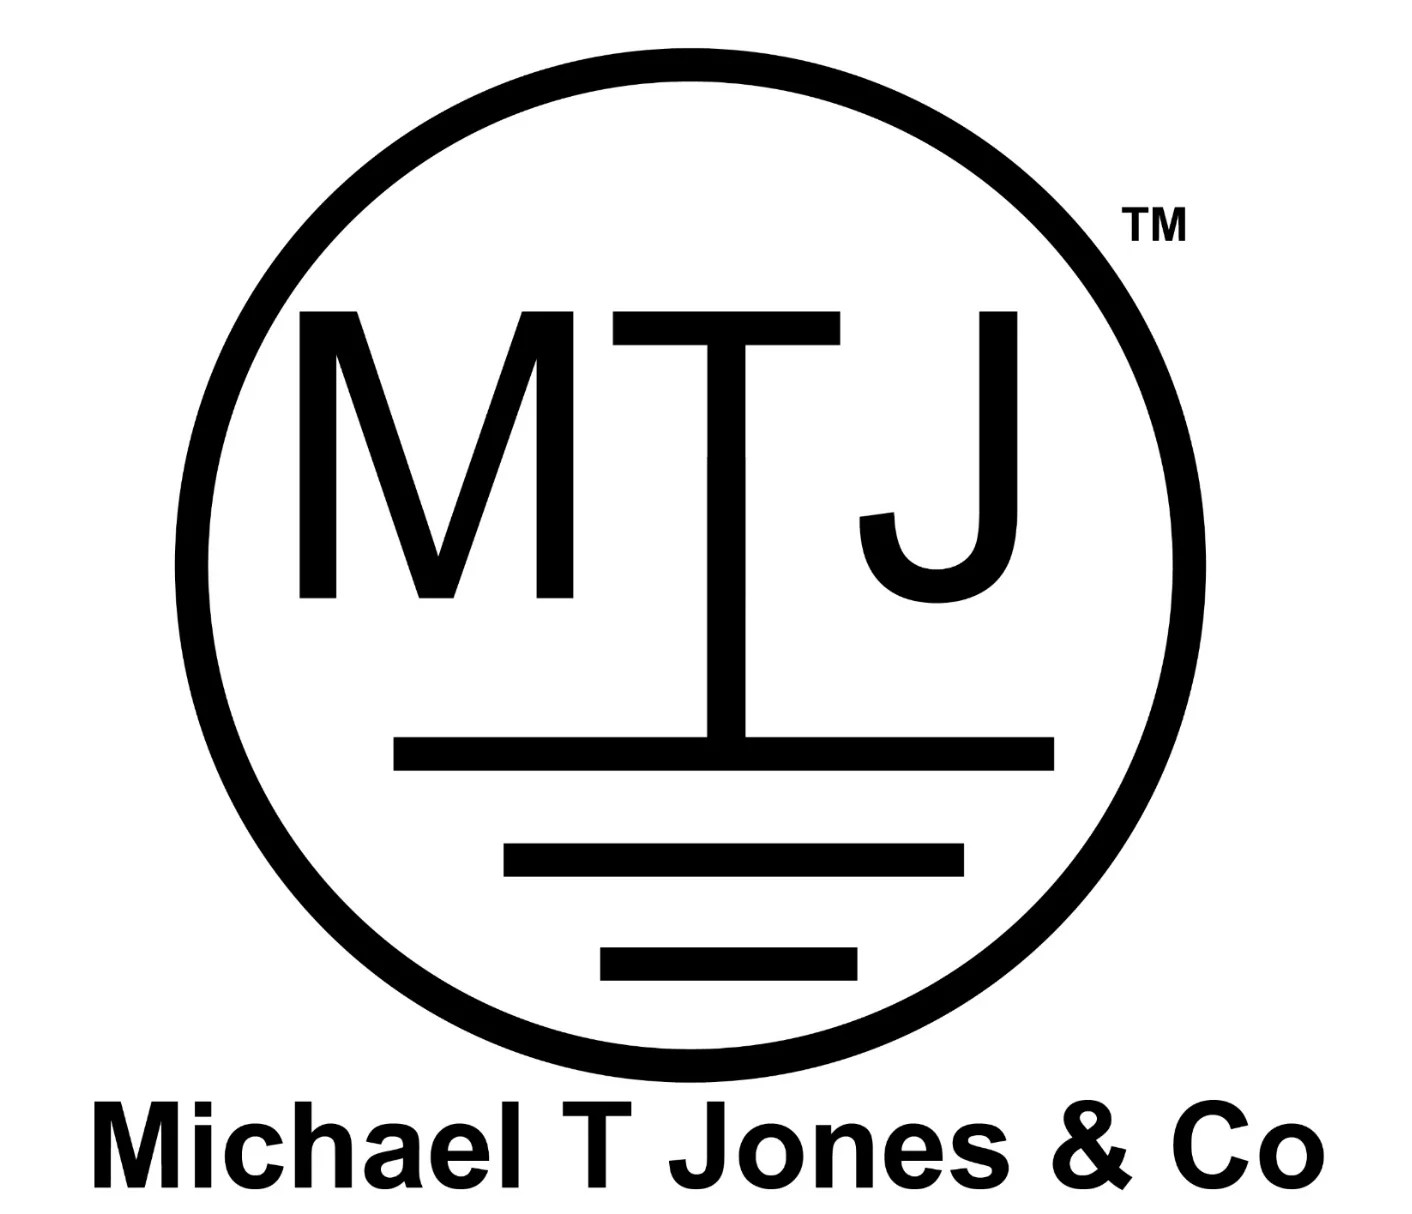 hight resolution of michael t jones company is a precision manufacturer of electrical assemblies such as industrial control panels wiring harnesses aerospace assemblies and